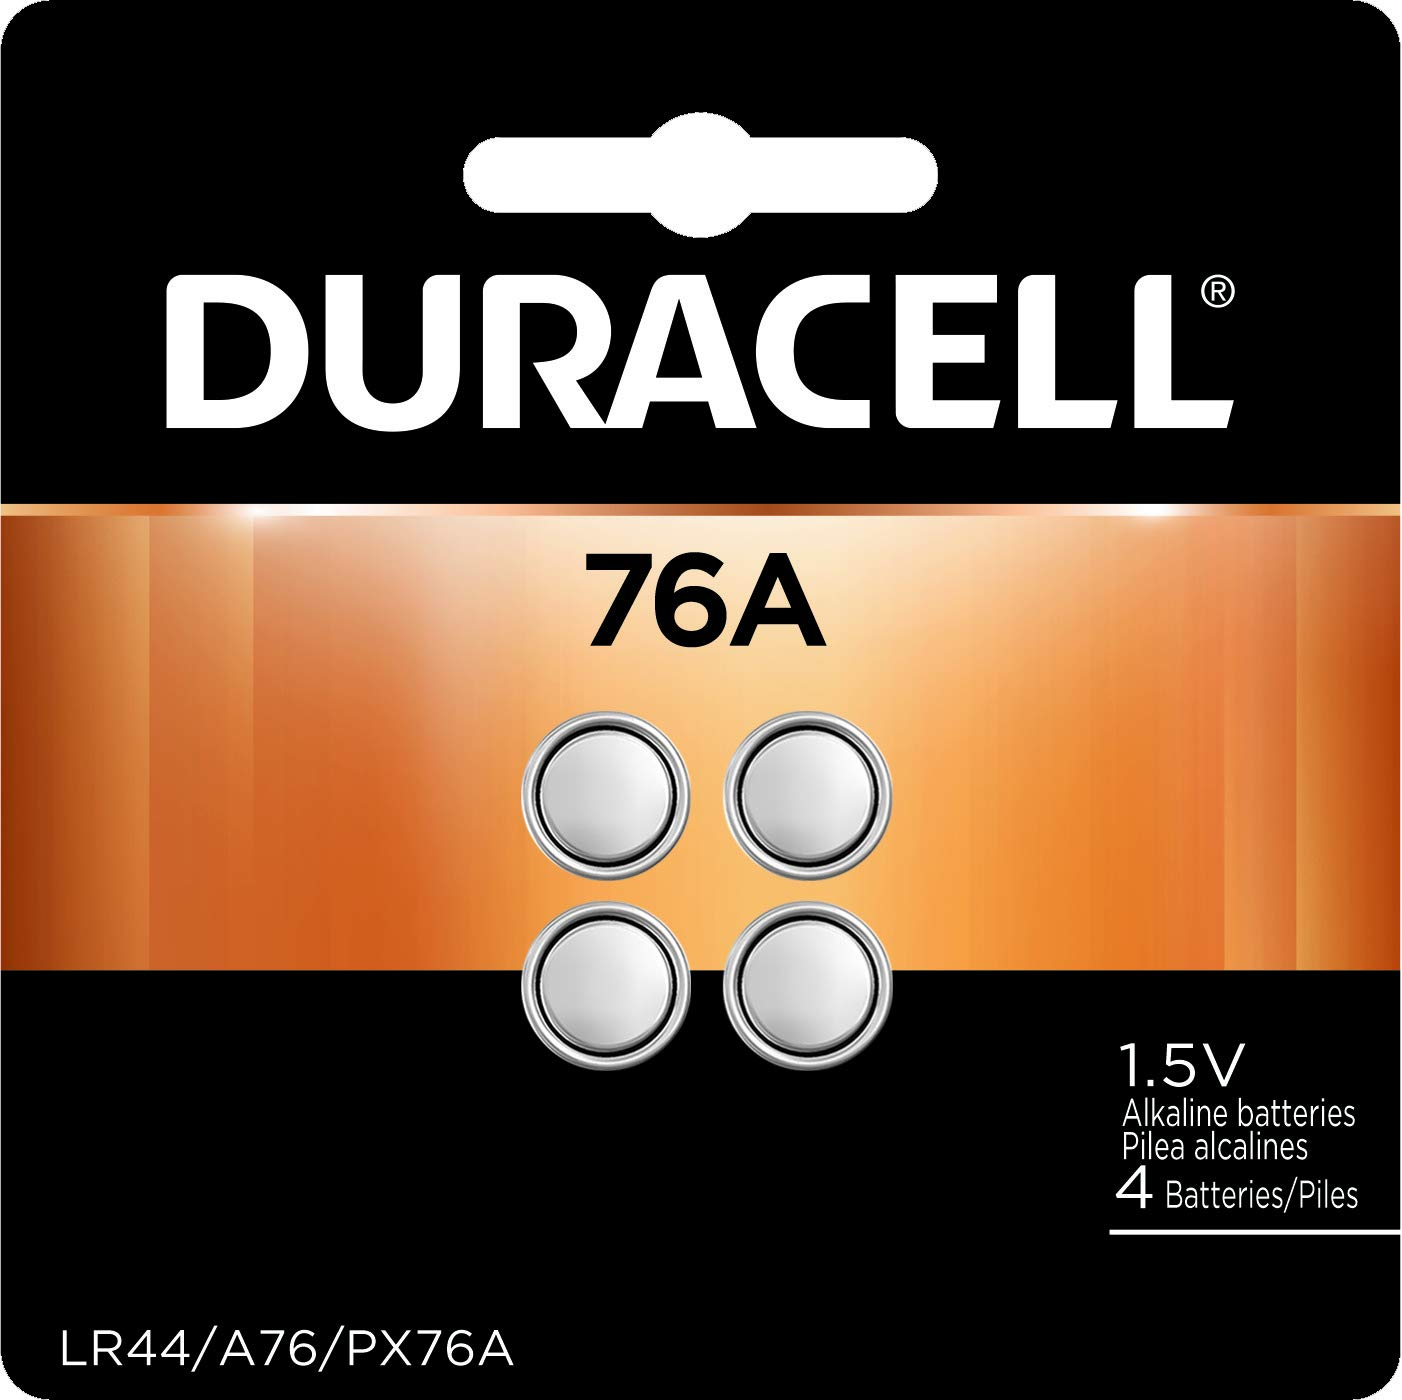 Duracell – 76A/LR44 Silver Oxide Button Batteries – Long Lasting 1.5V Battery – 4 Count